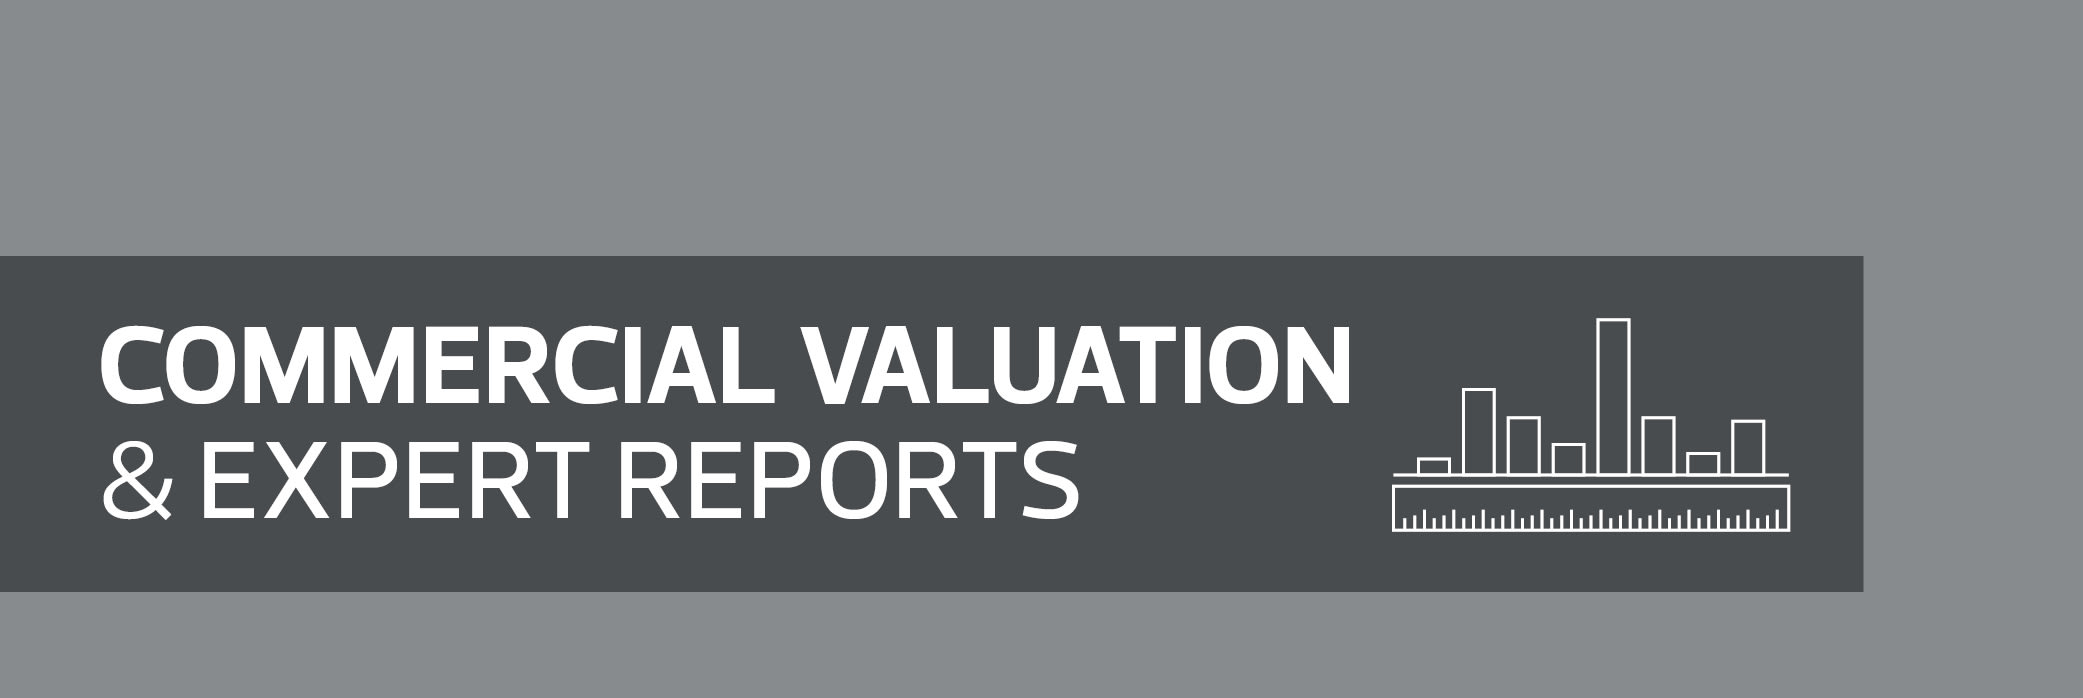 Commercial valuation and expert reports